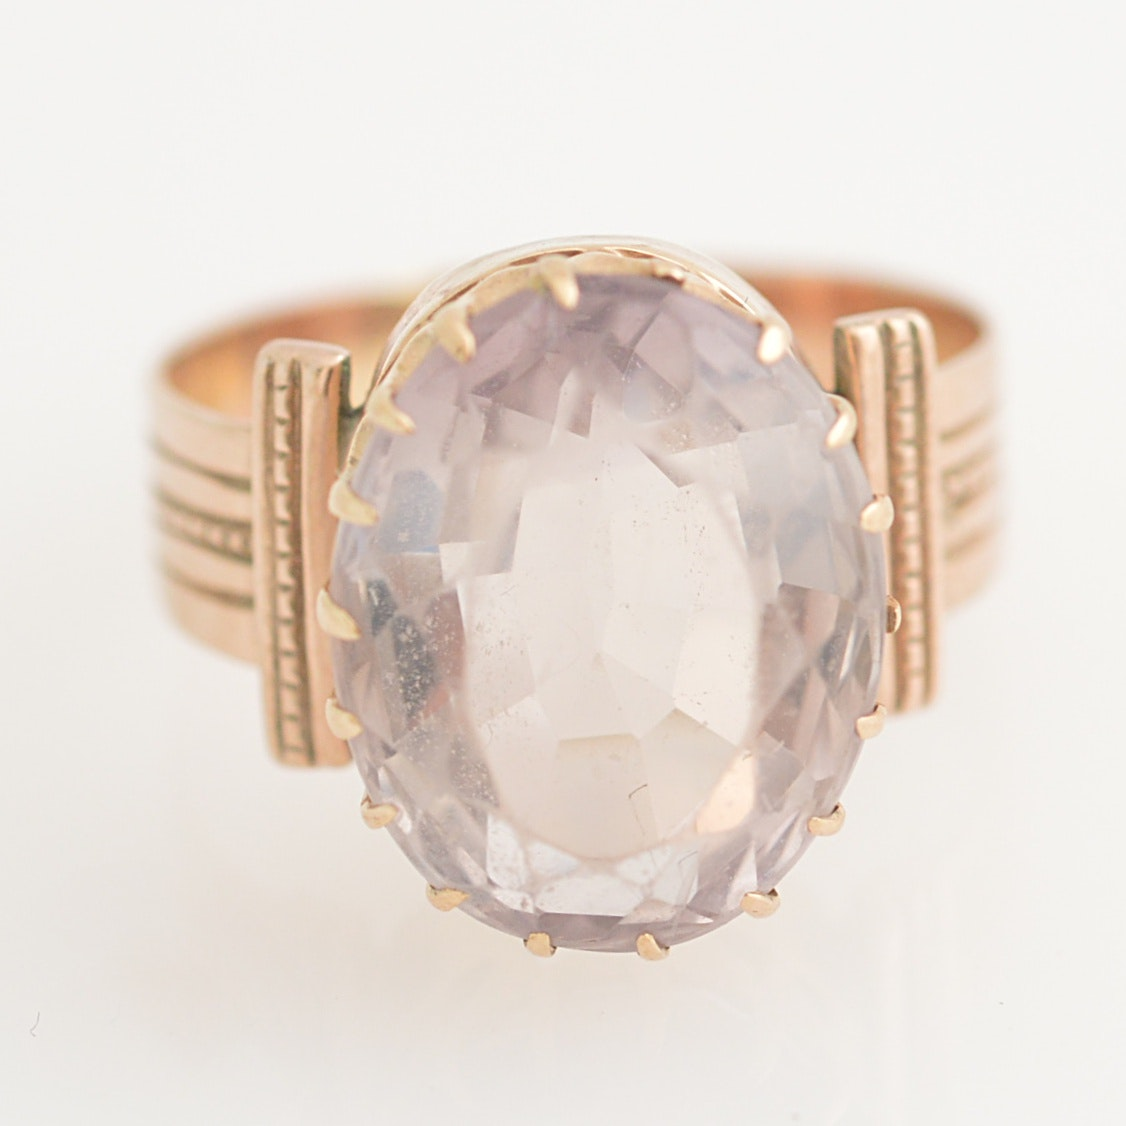 Late Victorian 10K Yellow Gold and Amethyst Ring